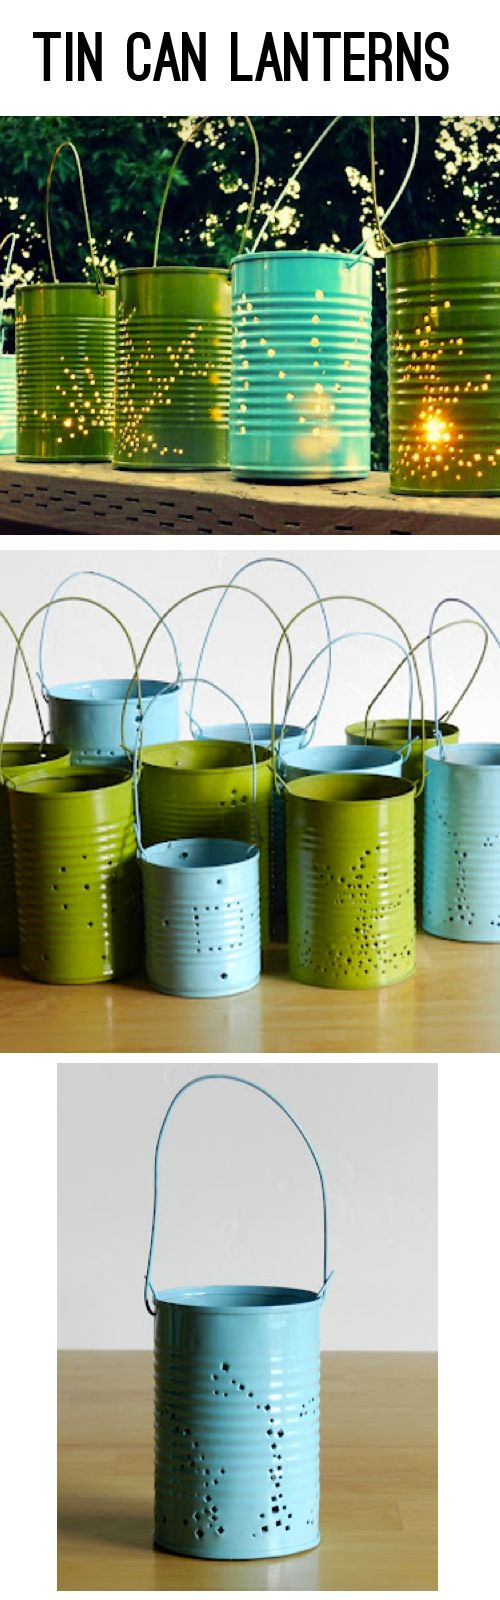 Repurpose tin cans; Make these lovely outdoor luminaries from Grow CreativeTins Cans Parties, Outdoor Luminaries, Repurposing Tins, Repurpoed Tins, Spring Colors, Outdoor Parties, Growing Creative, Tin Can Lanterns, Tins Cans Lanterns